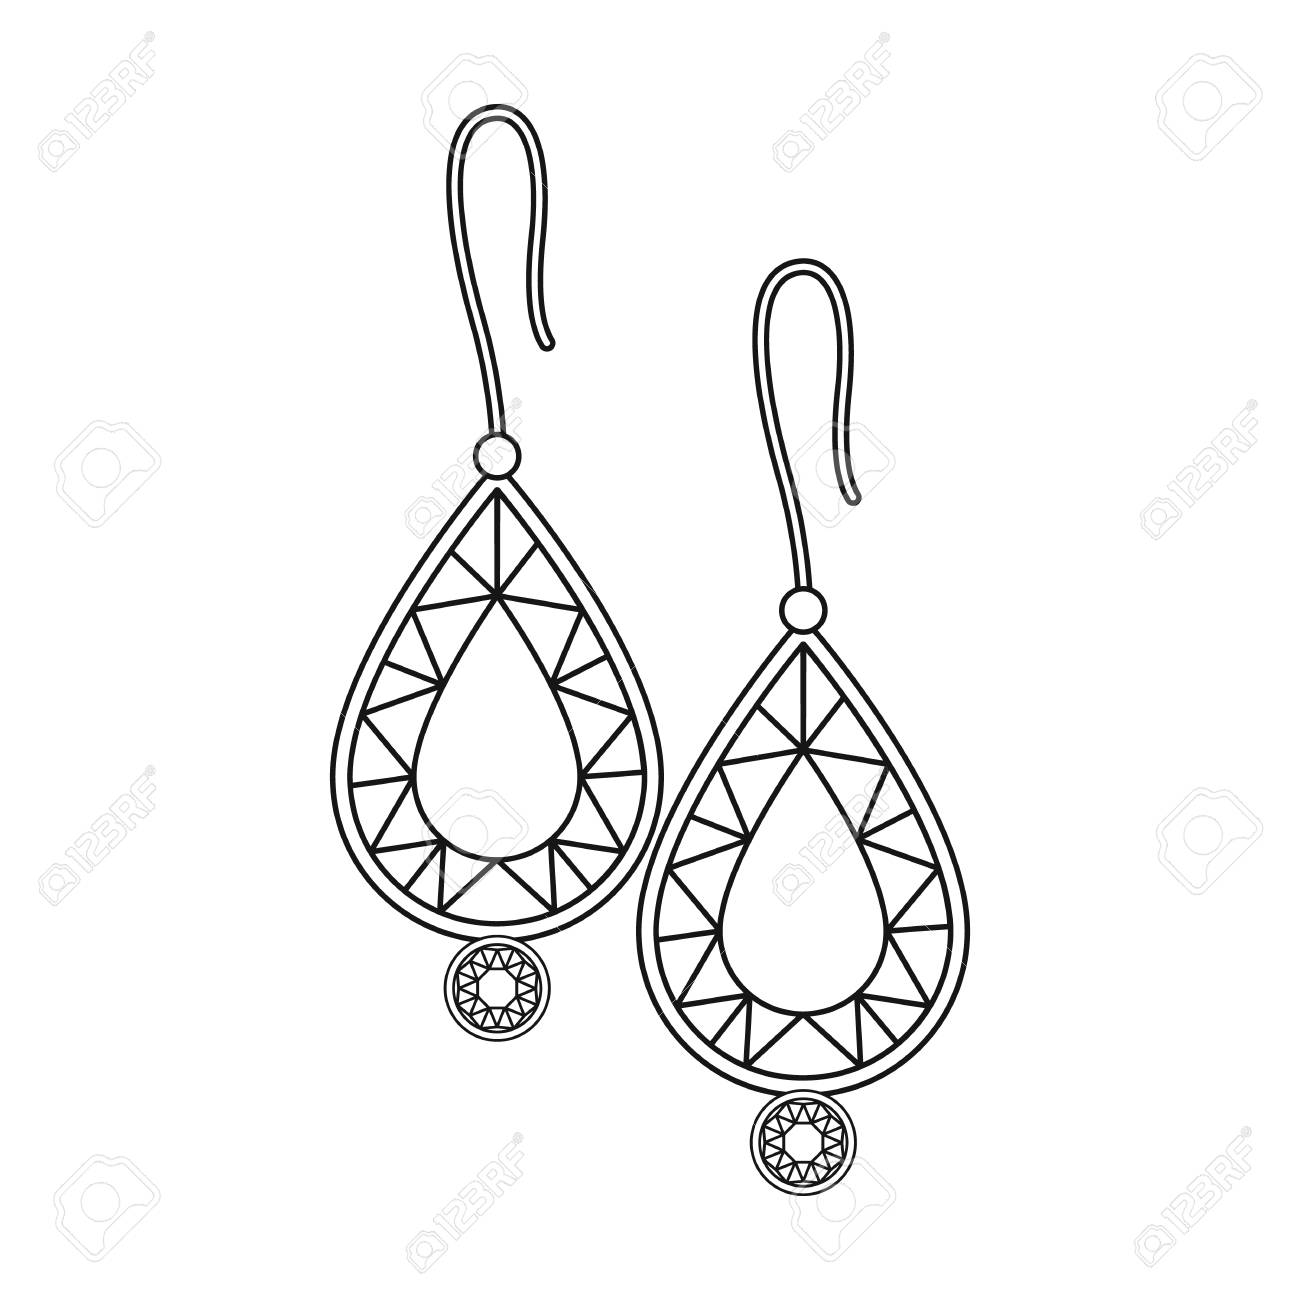 Earrings with gems icon in outline style isolated on white background.